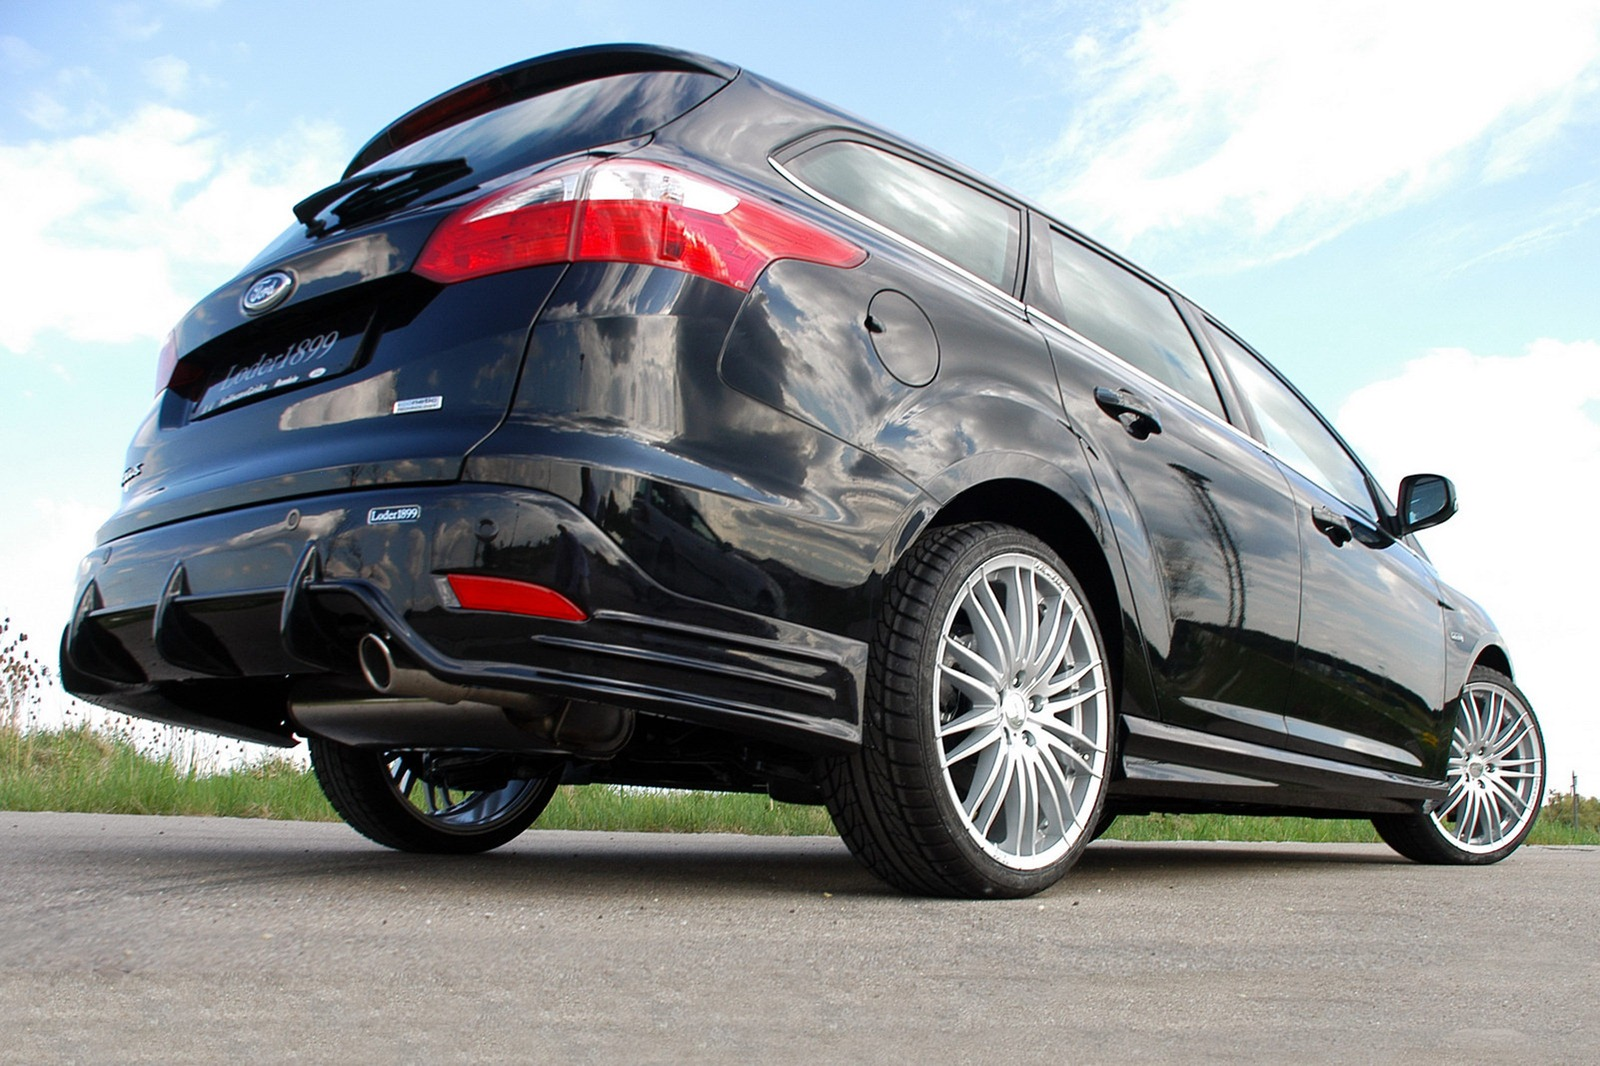 Loder1899 presents Ford Focus Estate tuning kit